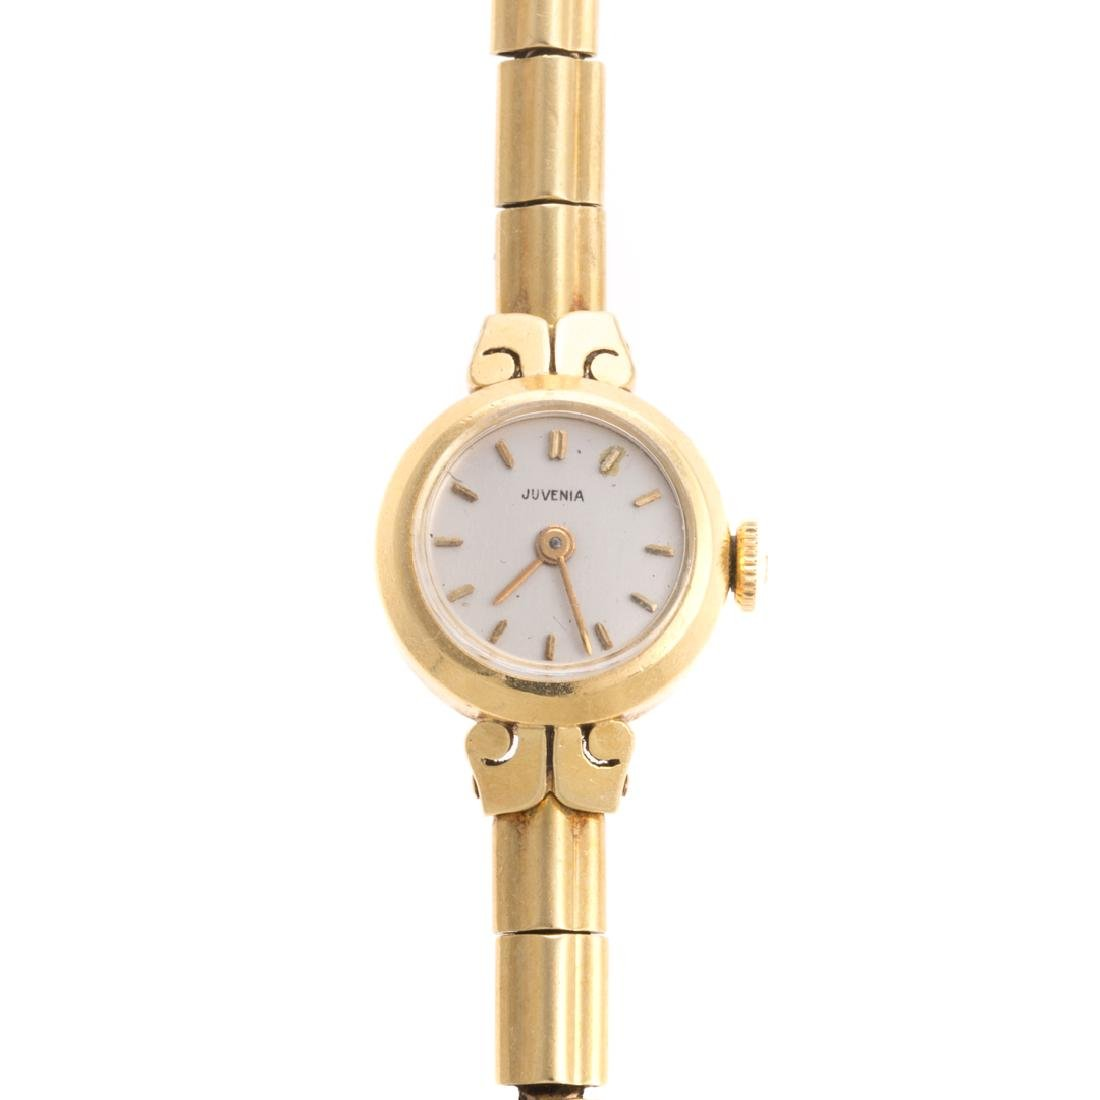 A Lady's Juvenia Wrist Watch in 18K